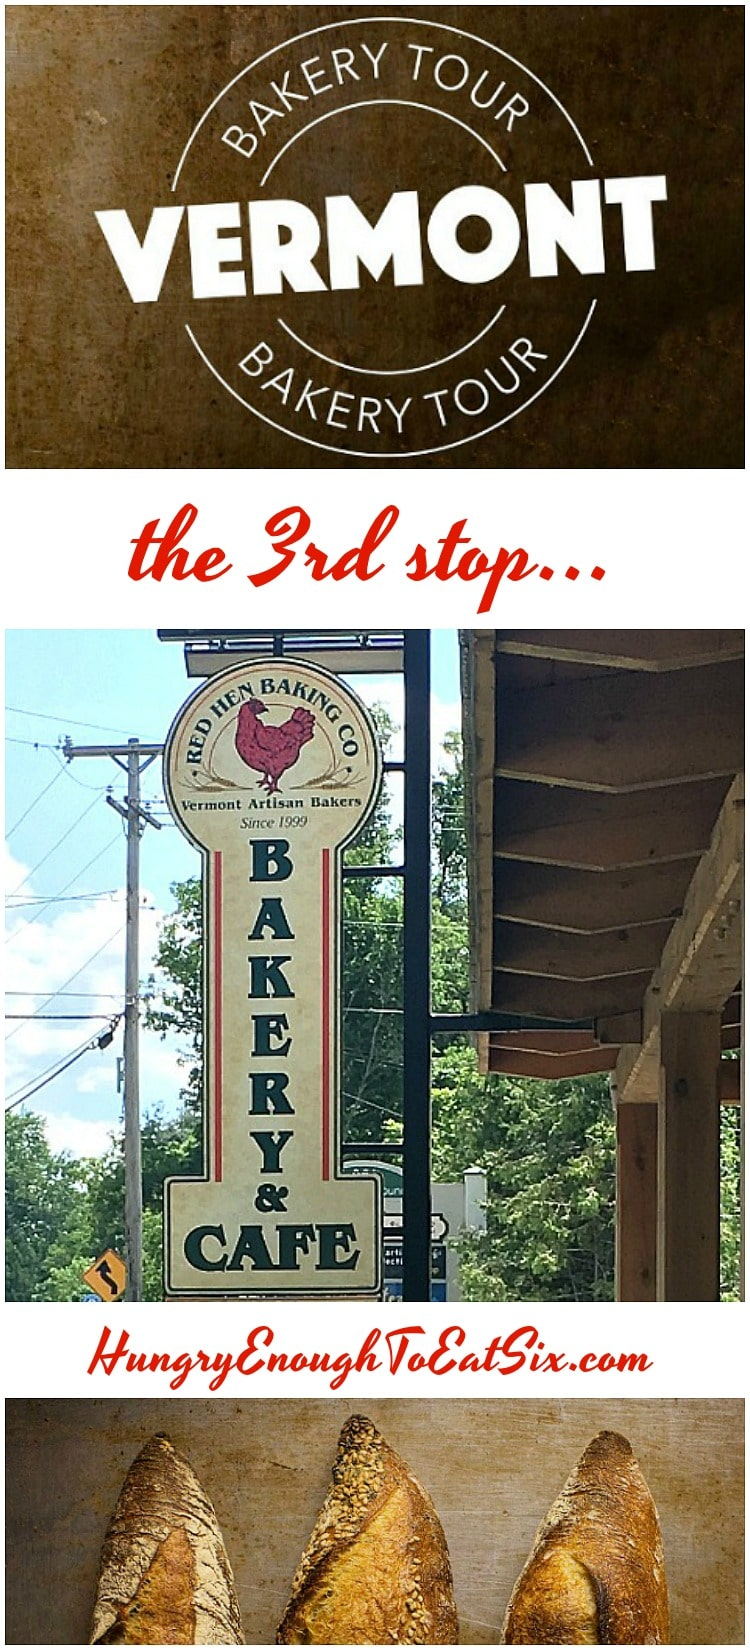 The Vermont Bakery Tour took us on a beautiful, sunny, Sunday morning drive to Middlesex, VT to check out the Red Hen Baking Company & Cafe.